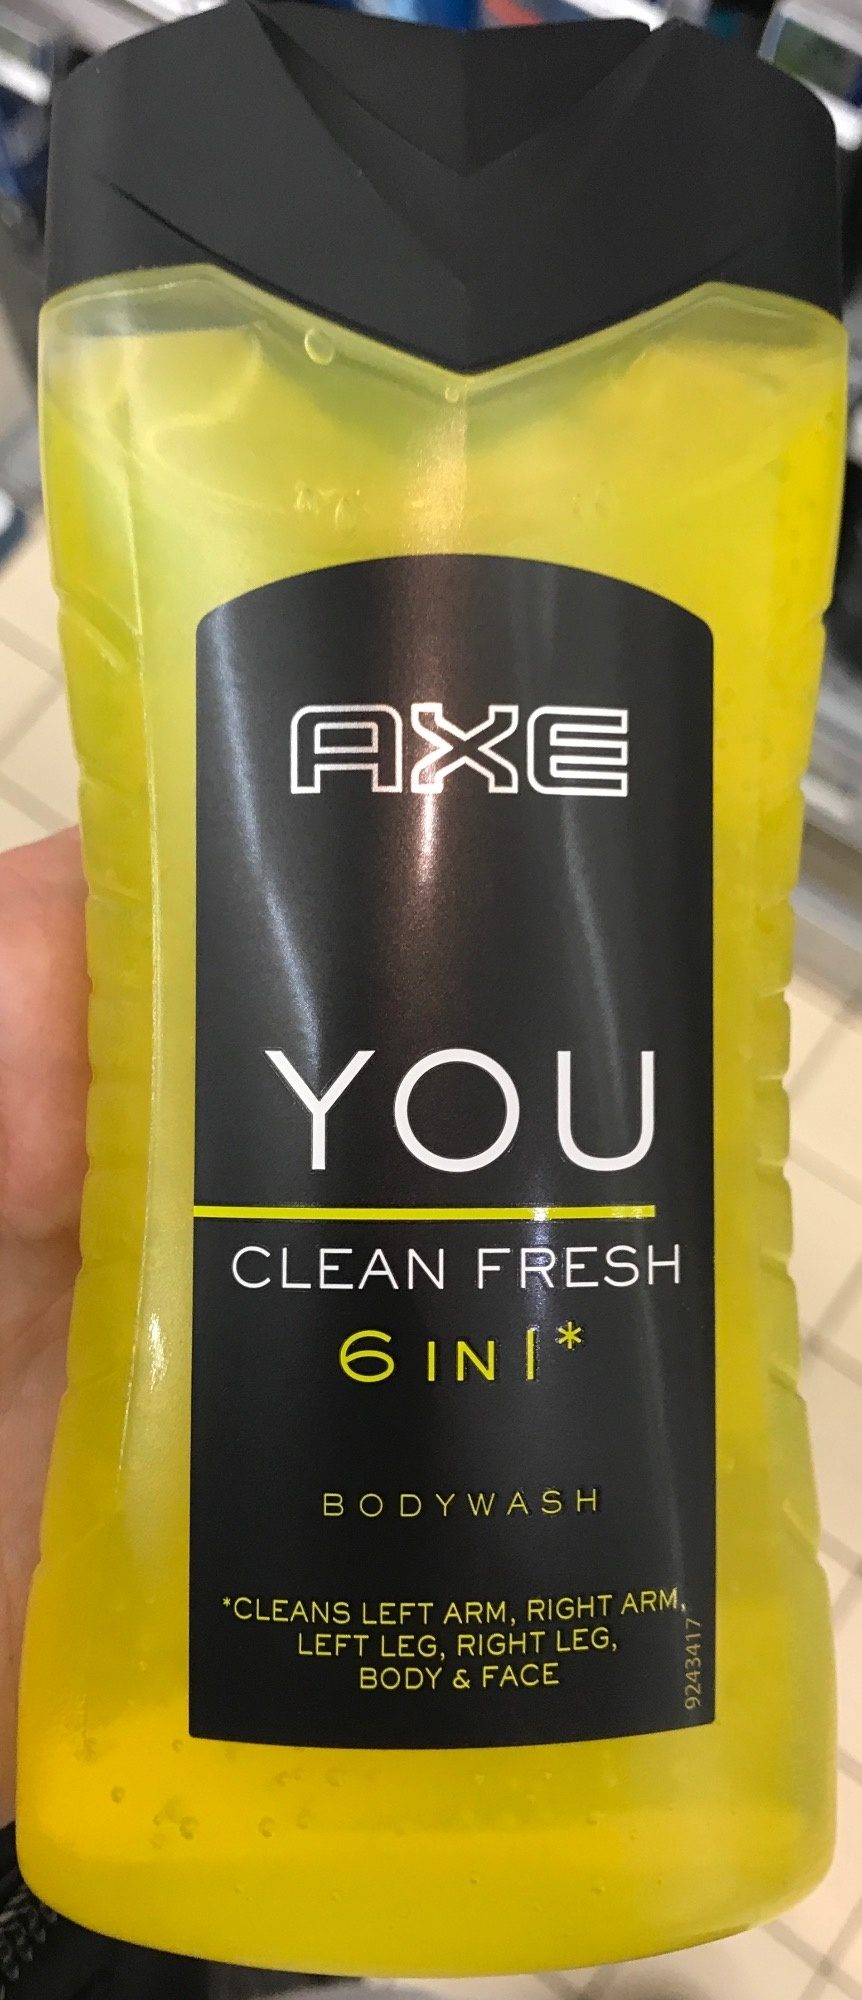 You Clean Fresh 6 in 1 Bodywash - Product